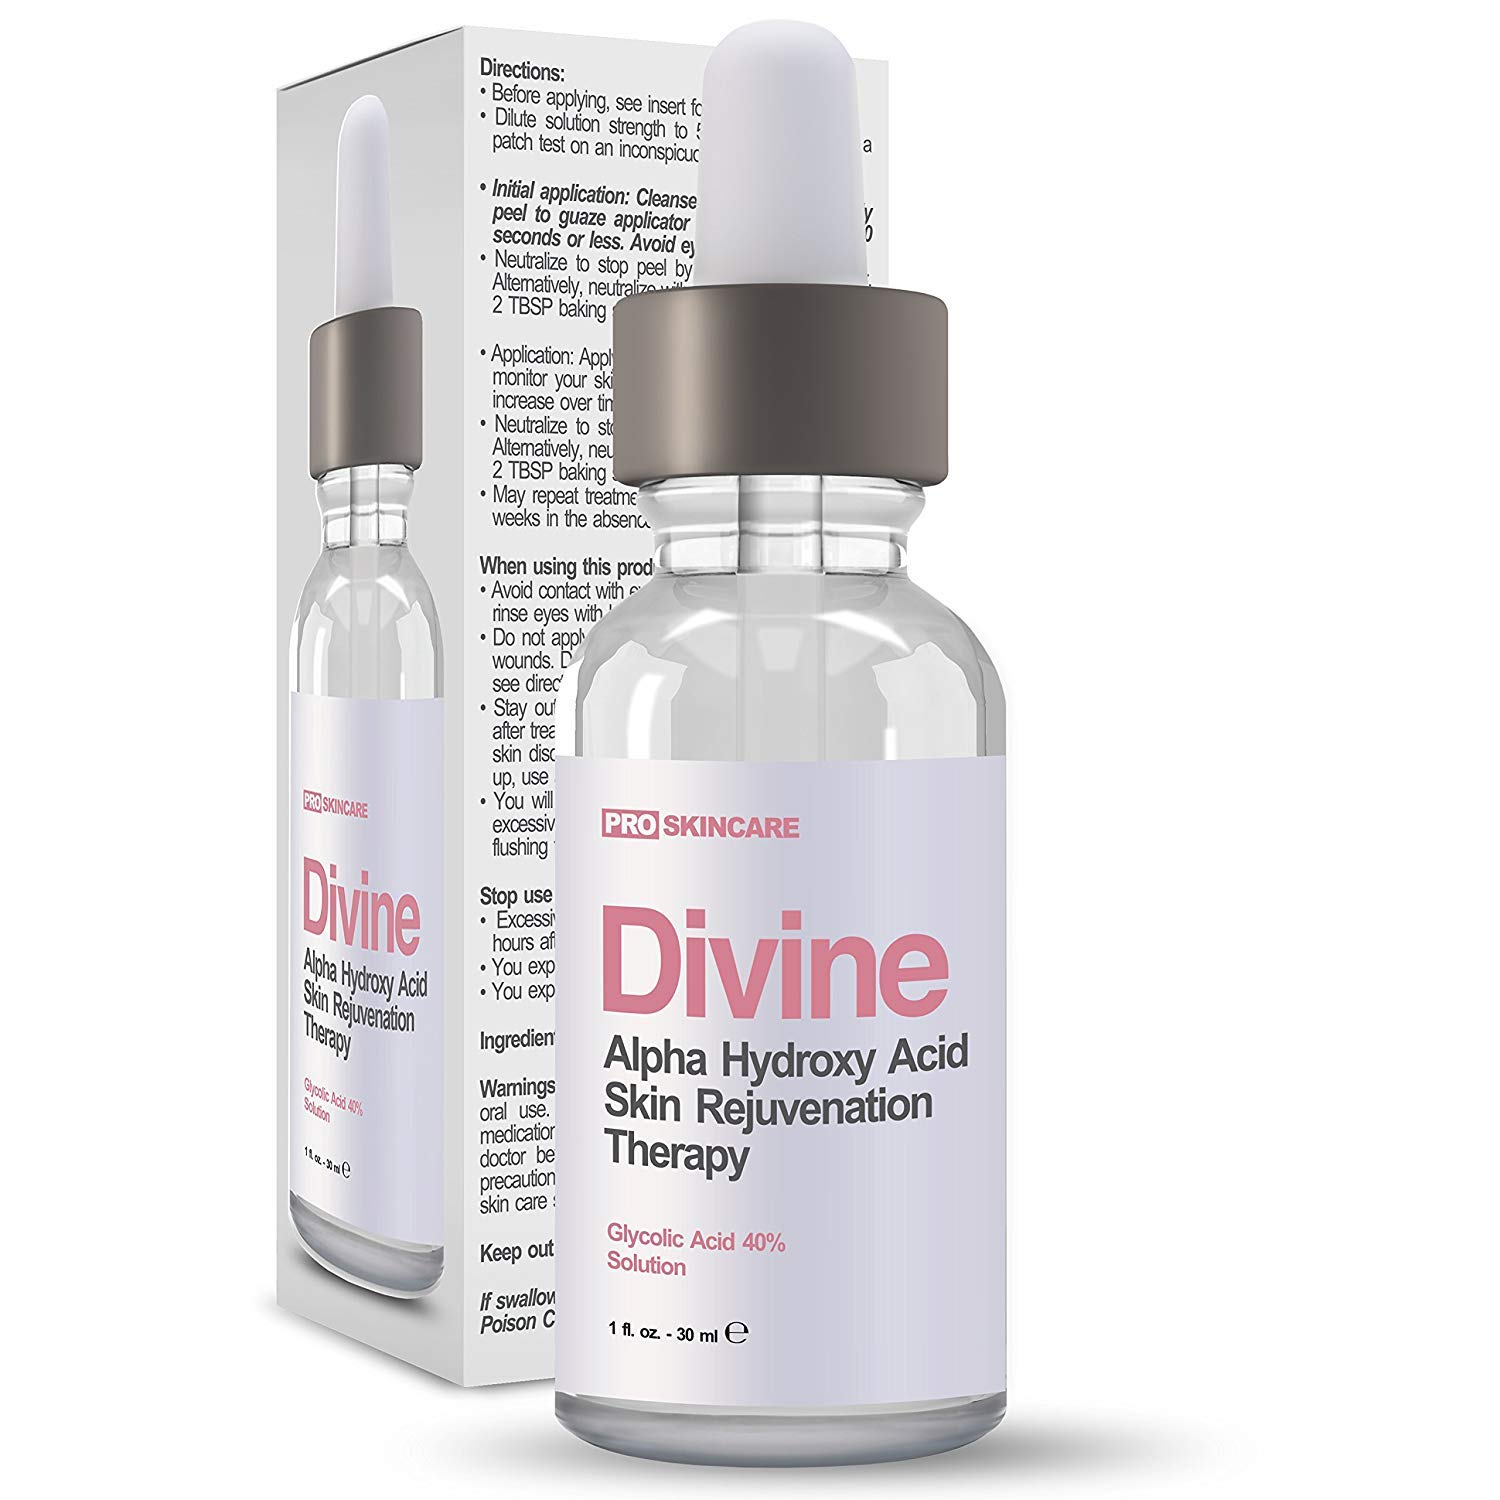 Glycolic Acid 40% Chemical Peel - Intense Alpha Hydroxy Acid Skin Peel For Acne Scarring, Wrinkles, Fine Lines and Brown Spots. 1 fl oz by DIVINE DERRIERE